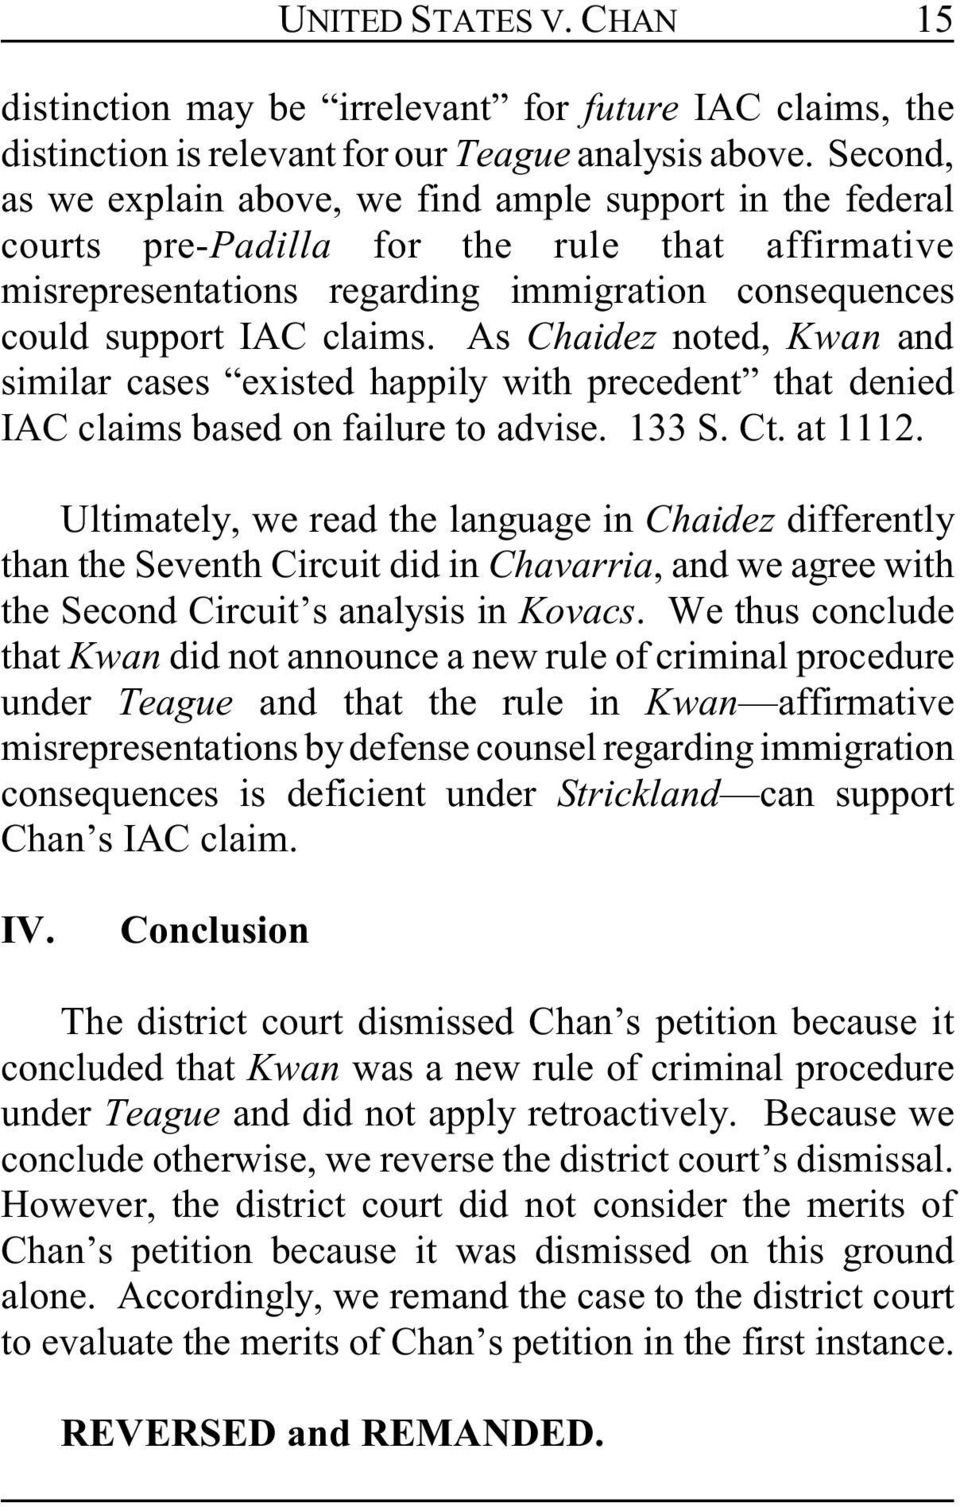 As Chaidez noted, Kwan and similar cases existed happily with precedent that denied IAC claims based on failure to advise. 133 S. Ct. at 1112.